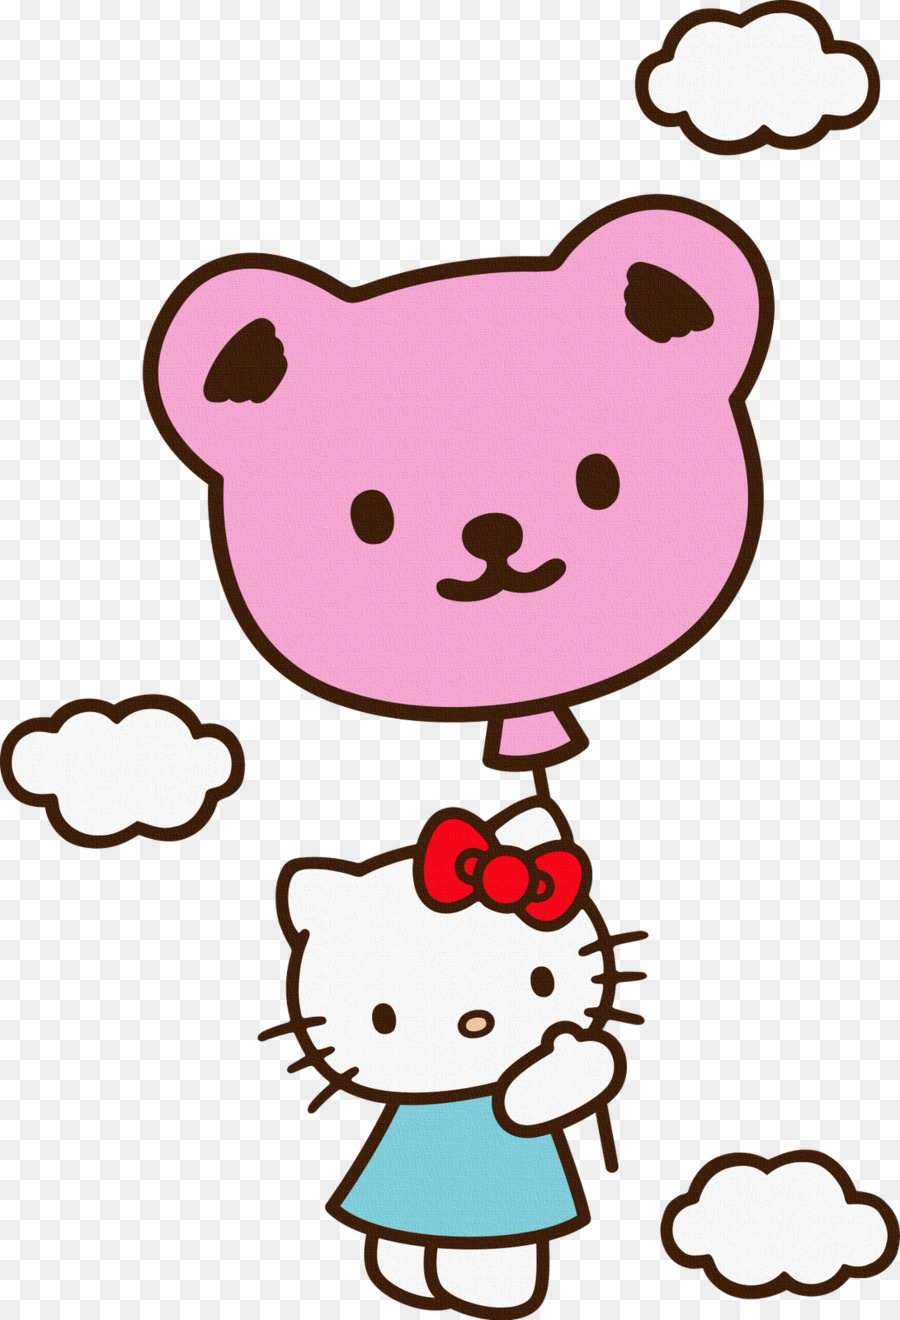 Good Wallpaper Hello Kitty Blackberry - kisspng-hello-kitty-desktop-wallpaper-blackberry-sanrio-wa-hello-5ab666117c5f96  Collection_396676.jpg